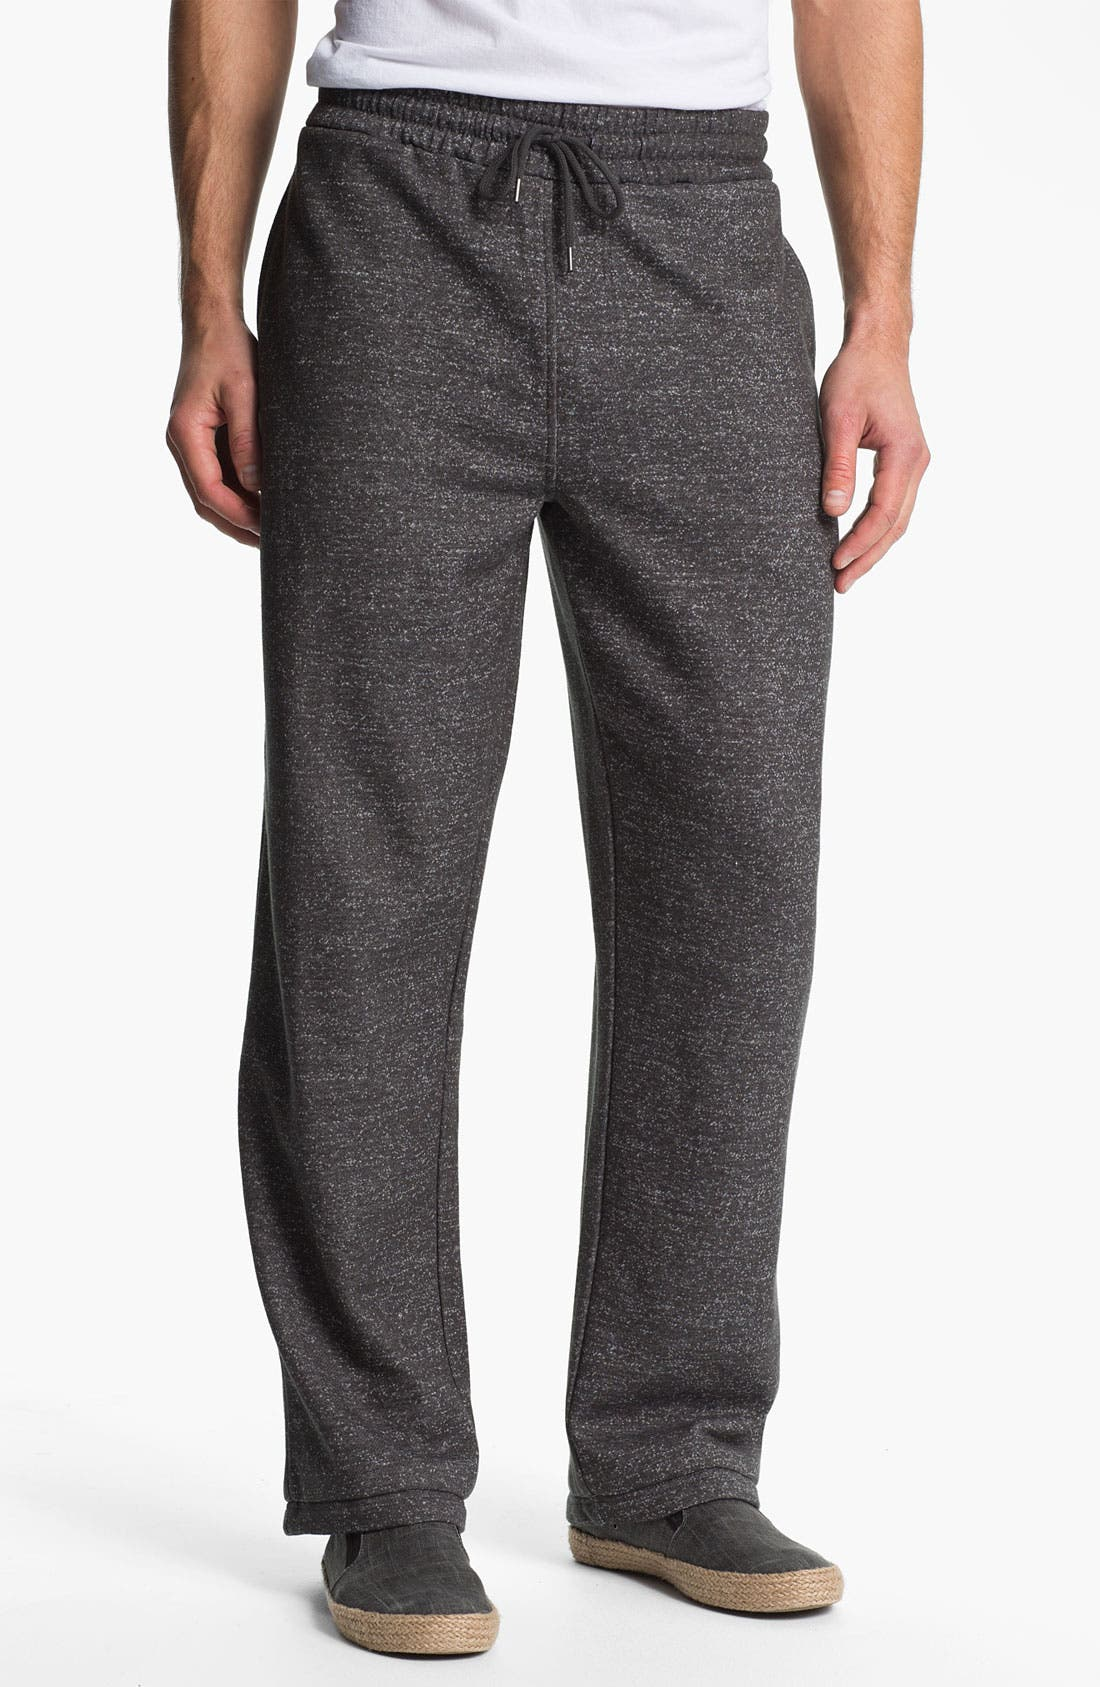 Alternate Image 1 Selected - O'Neill 'Matterhorn' Lounge Pants